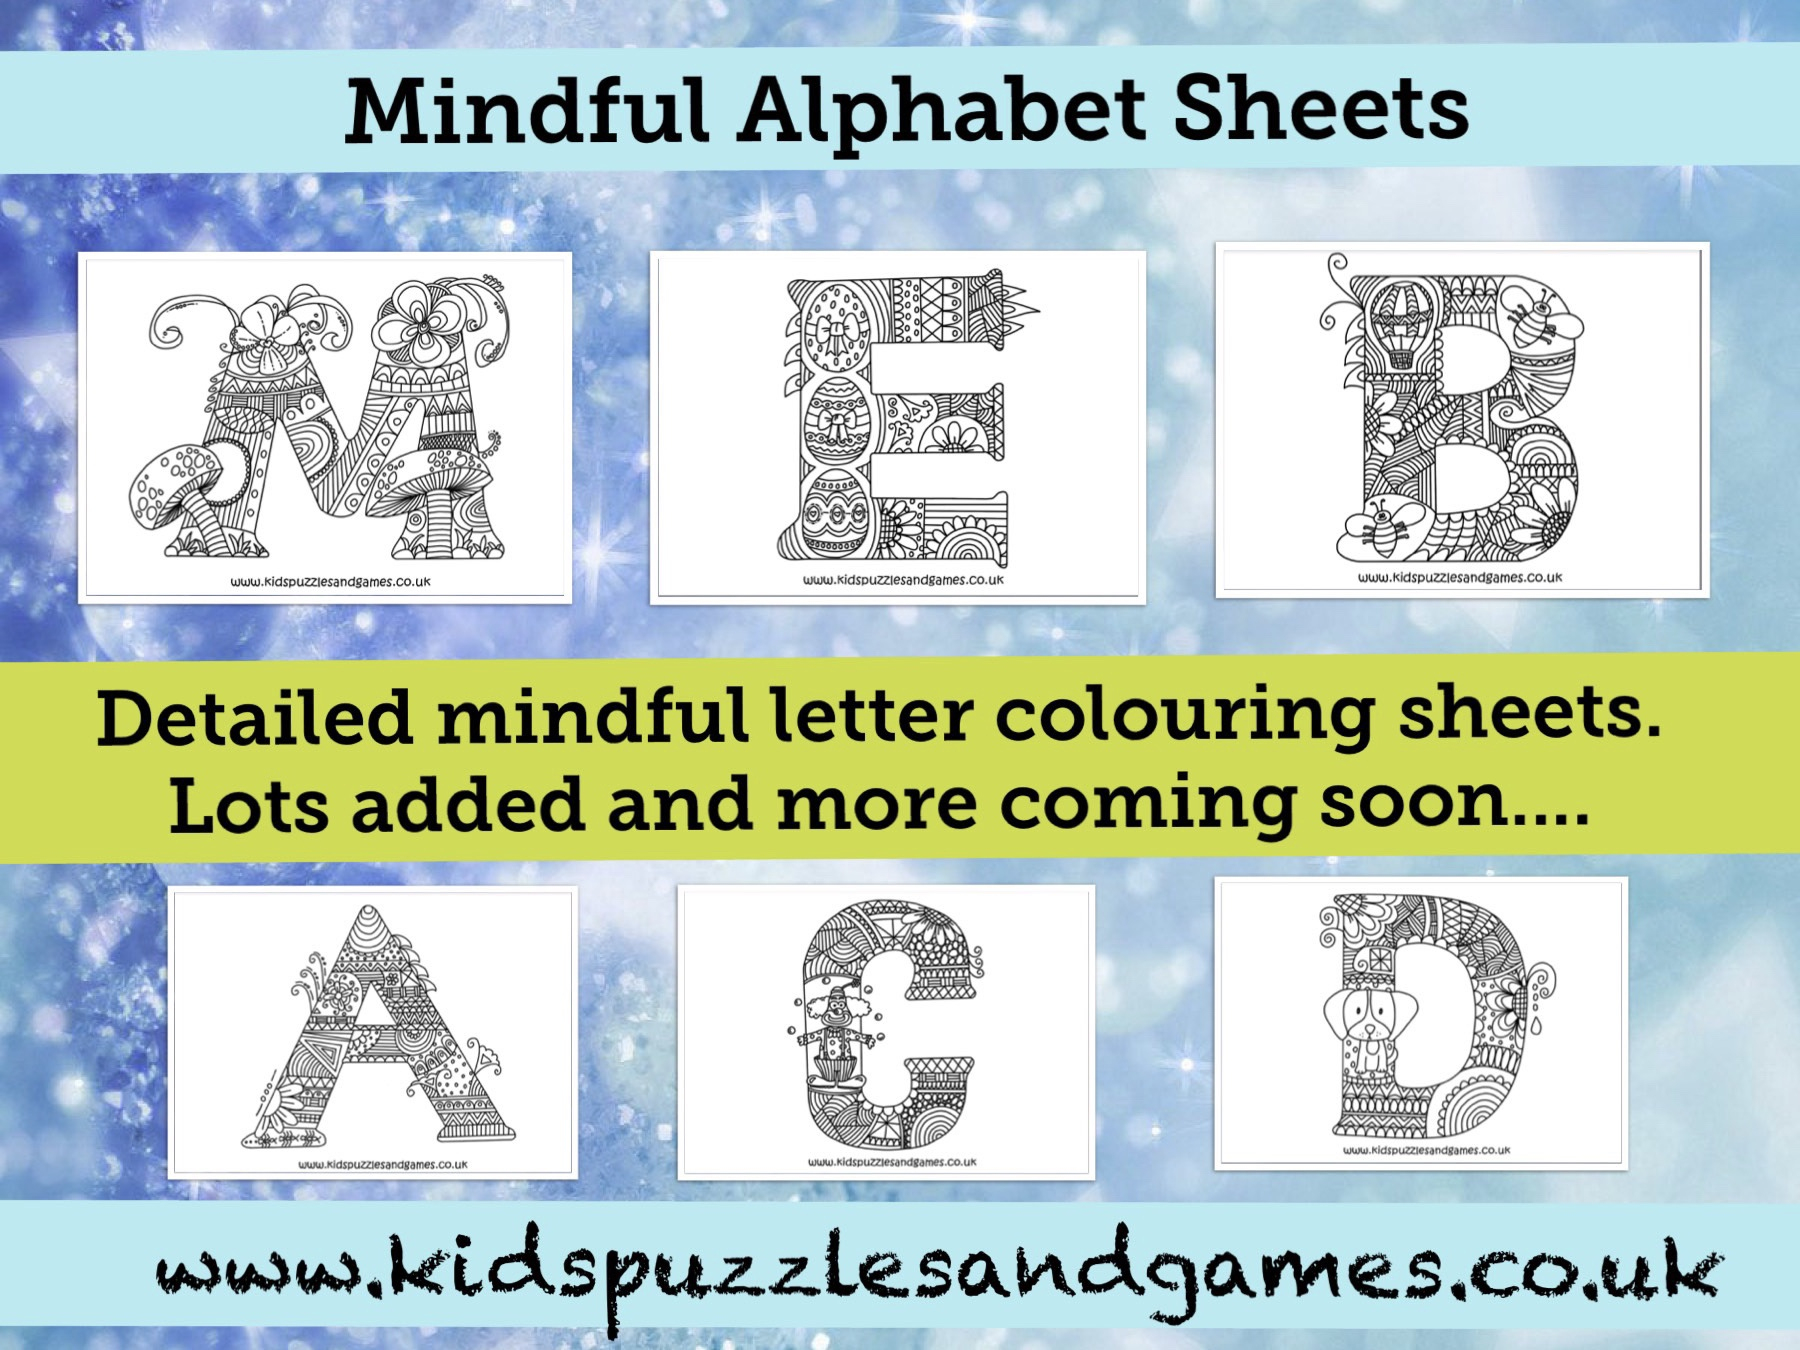 Welcome To Kids Puzzles And Games - Printable Puzzles For 5-7 Year Olds